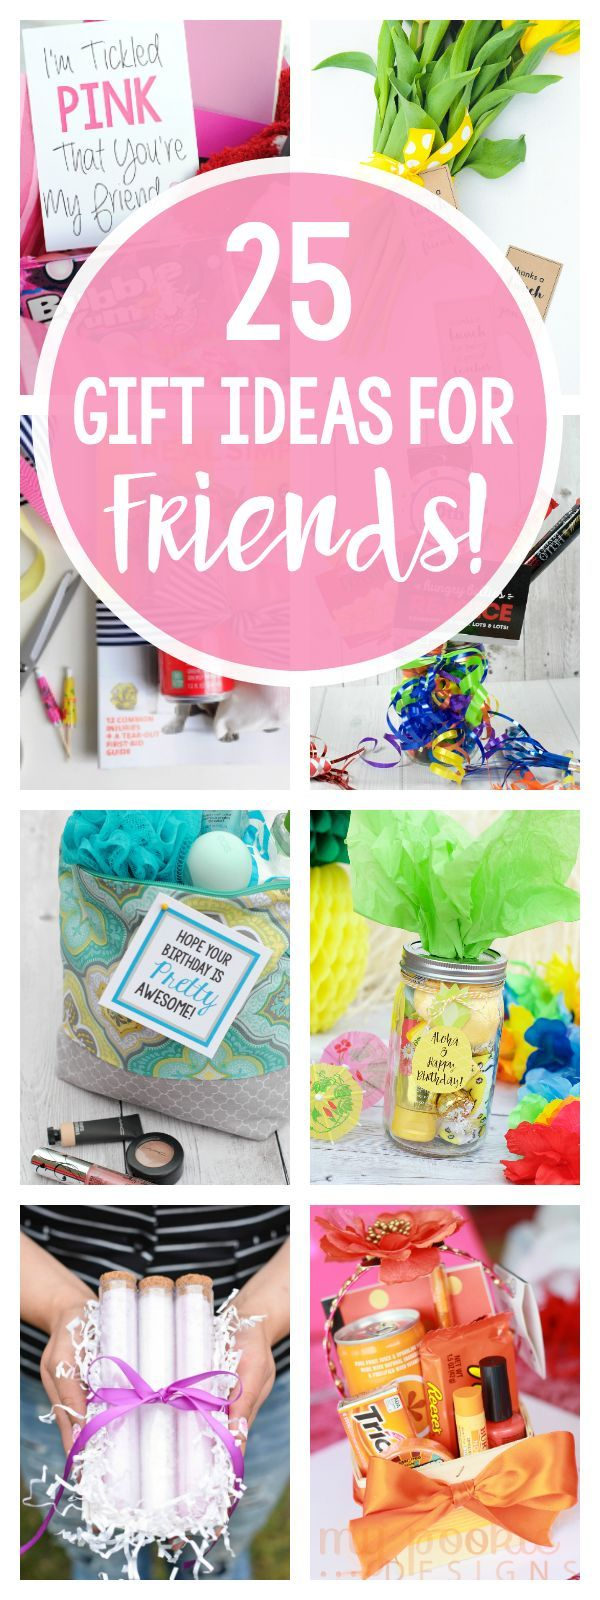 232 Best Cheap But Thoughtful Gift Ideas Images On